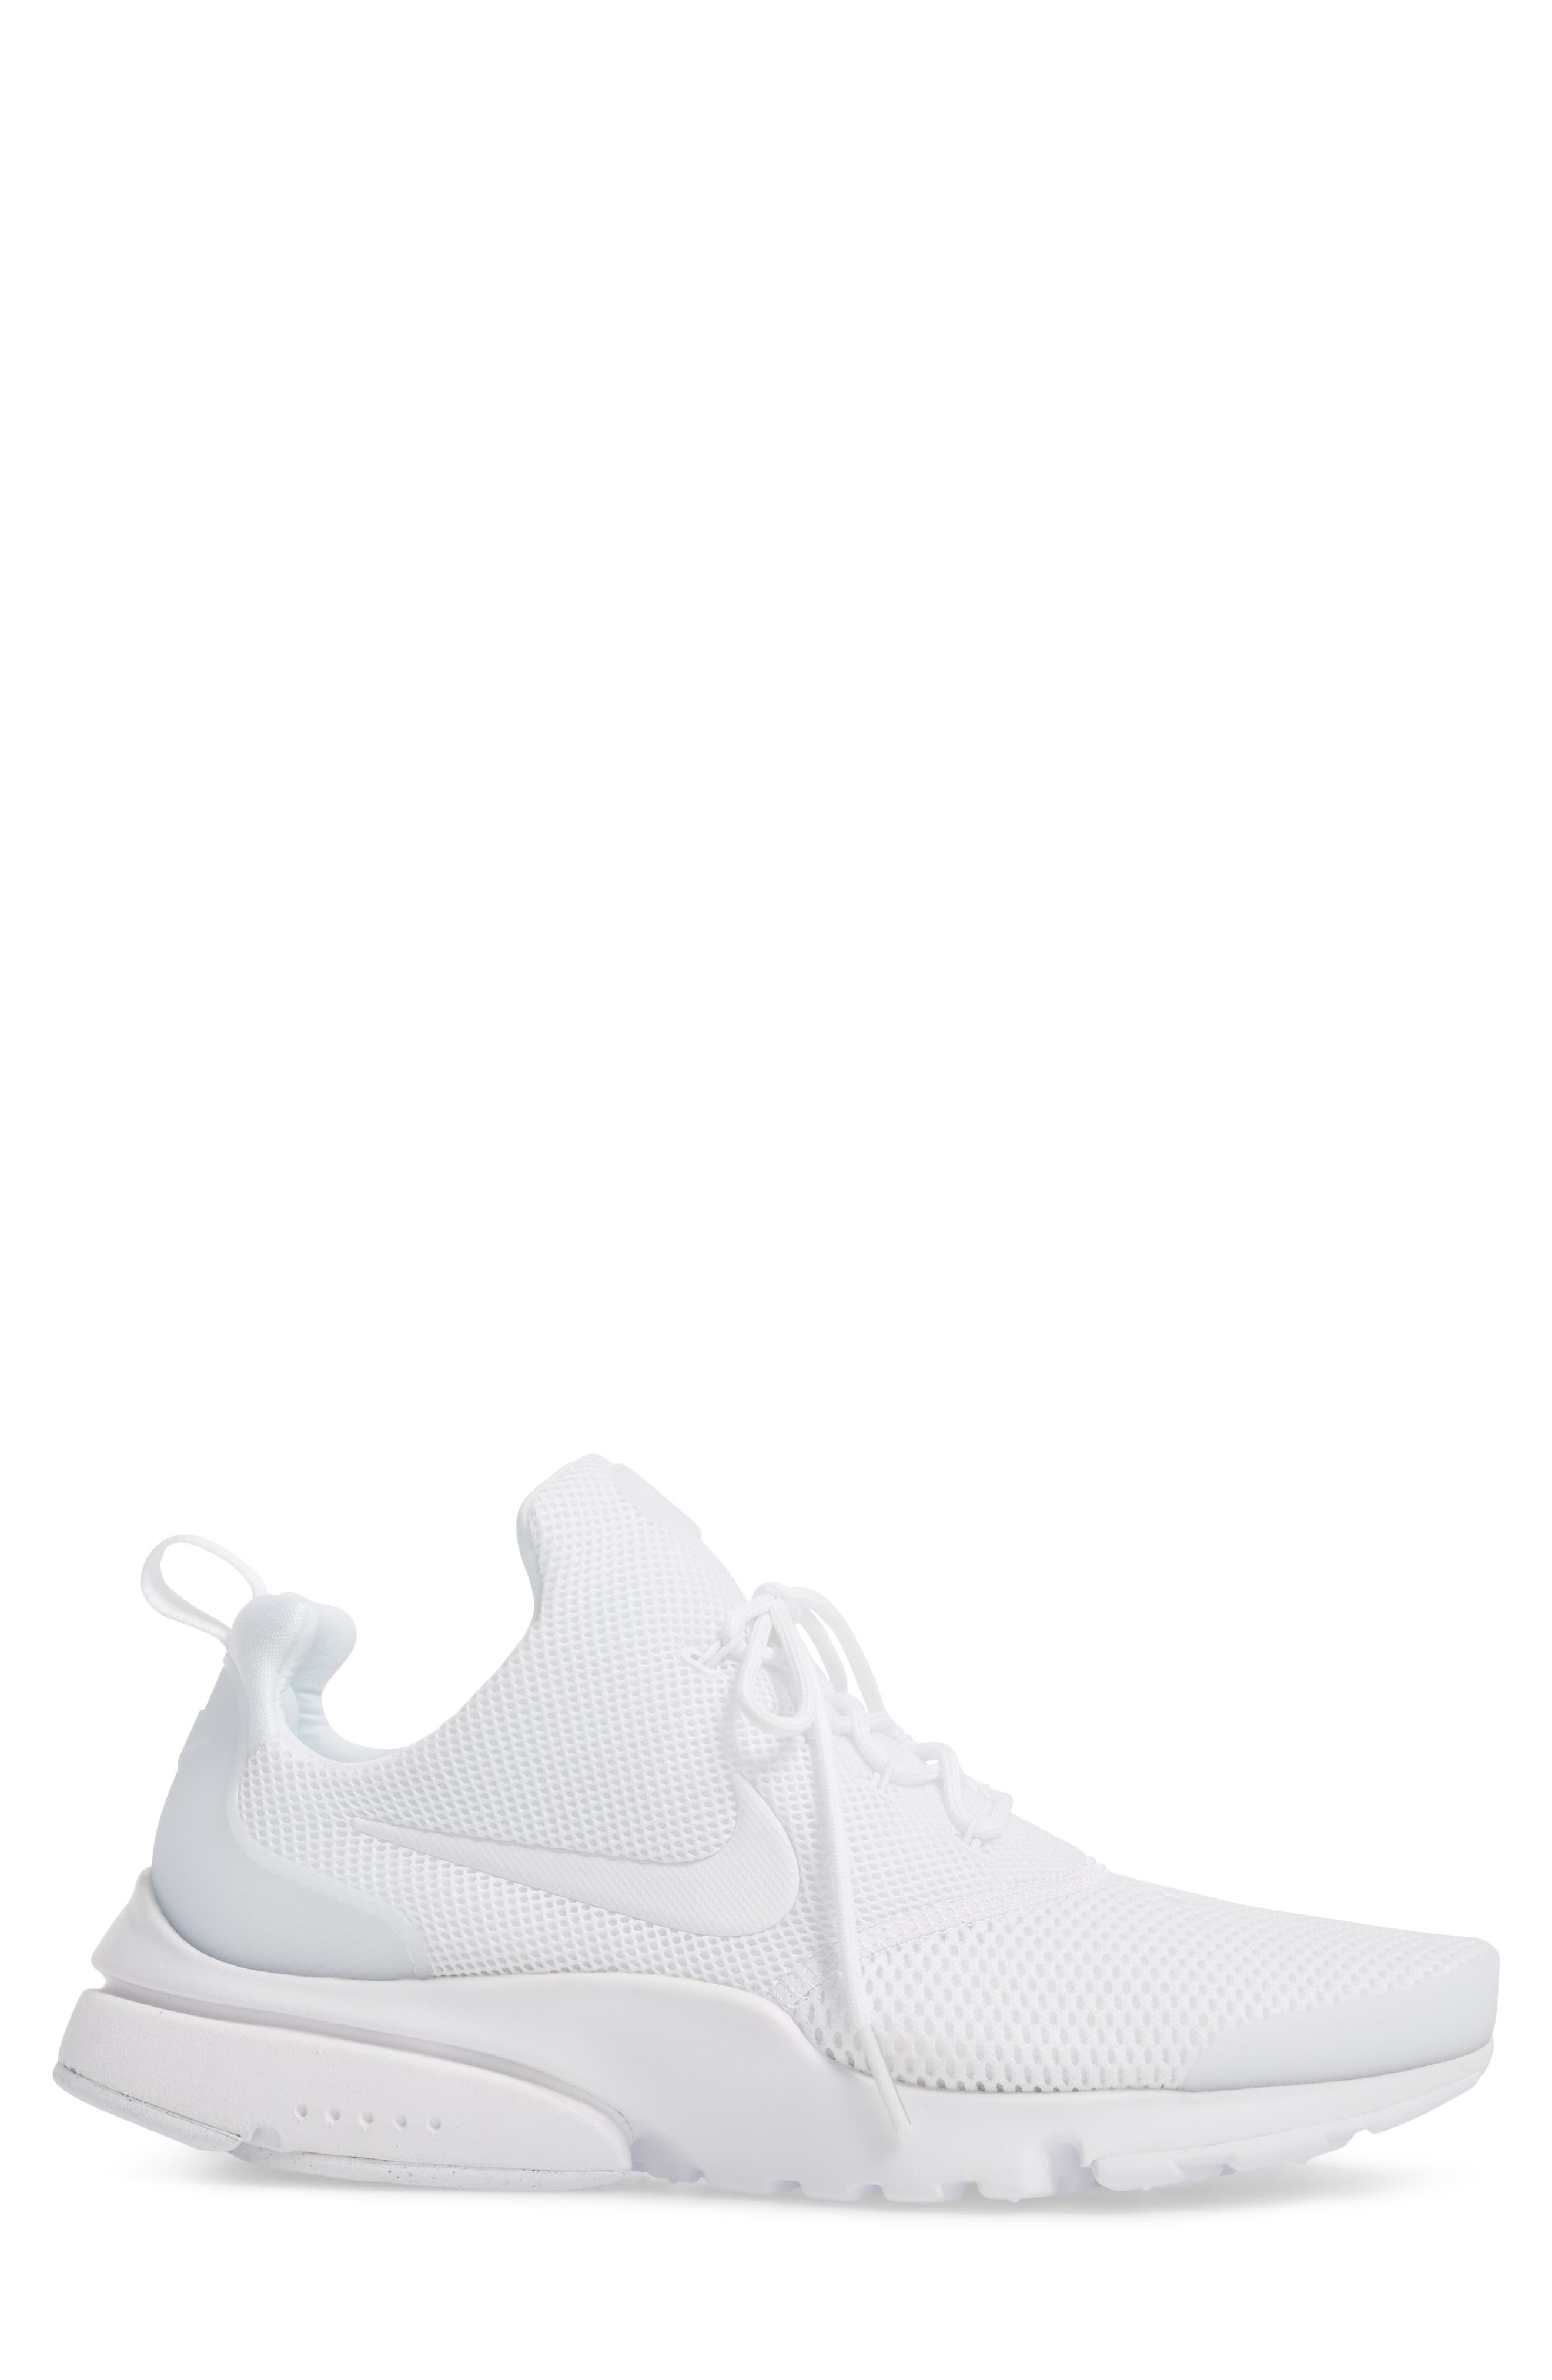 Alternate Image 3  - Nike Presto Fly Sneaker (Men)